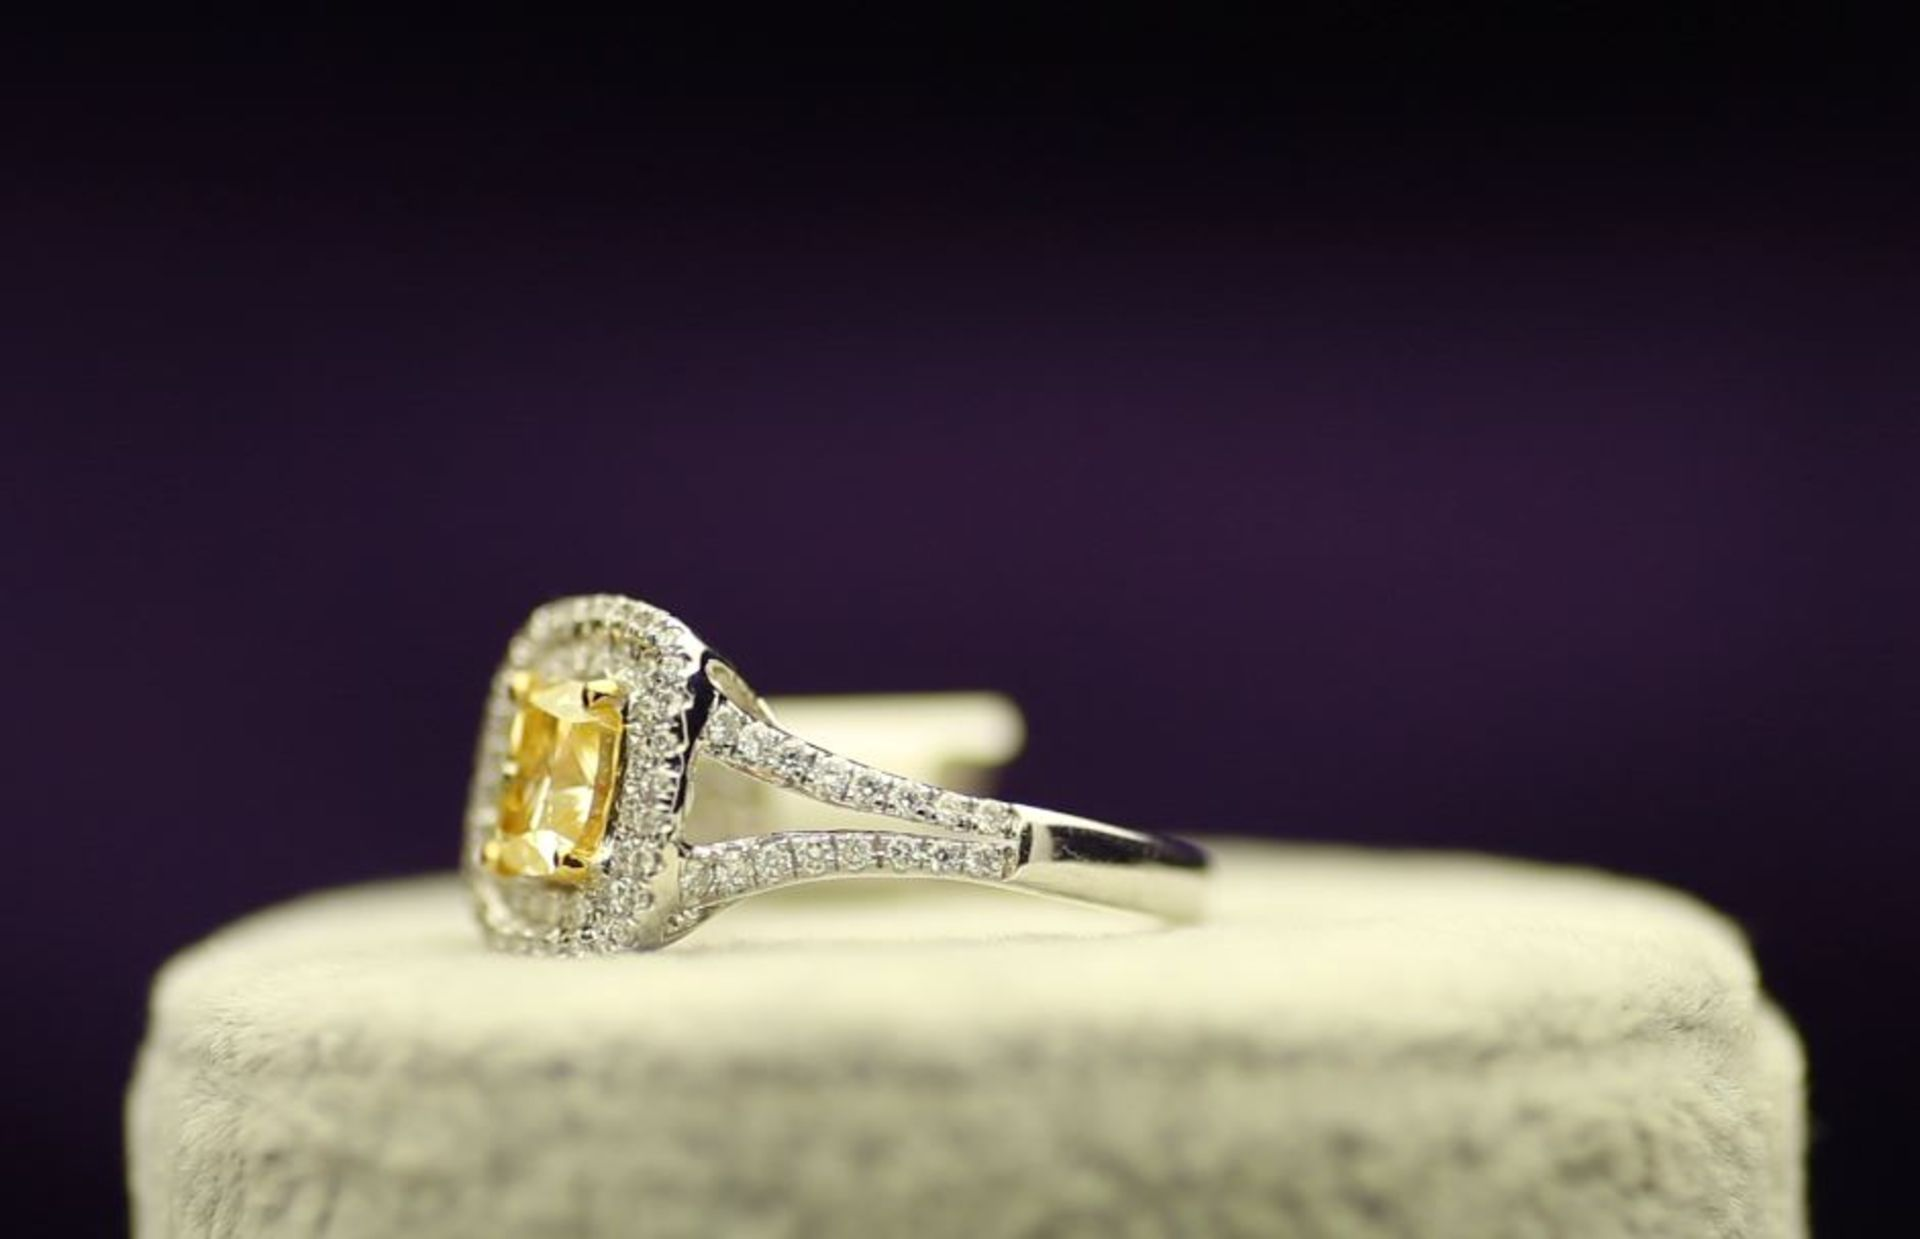 Lot 47 - 18k White Gold Single Stone Intense Fancy Yellow With Double Halo Setting Ring 1.01